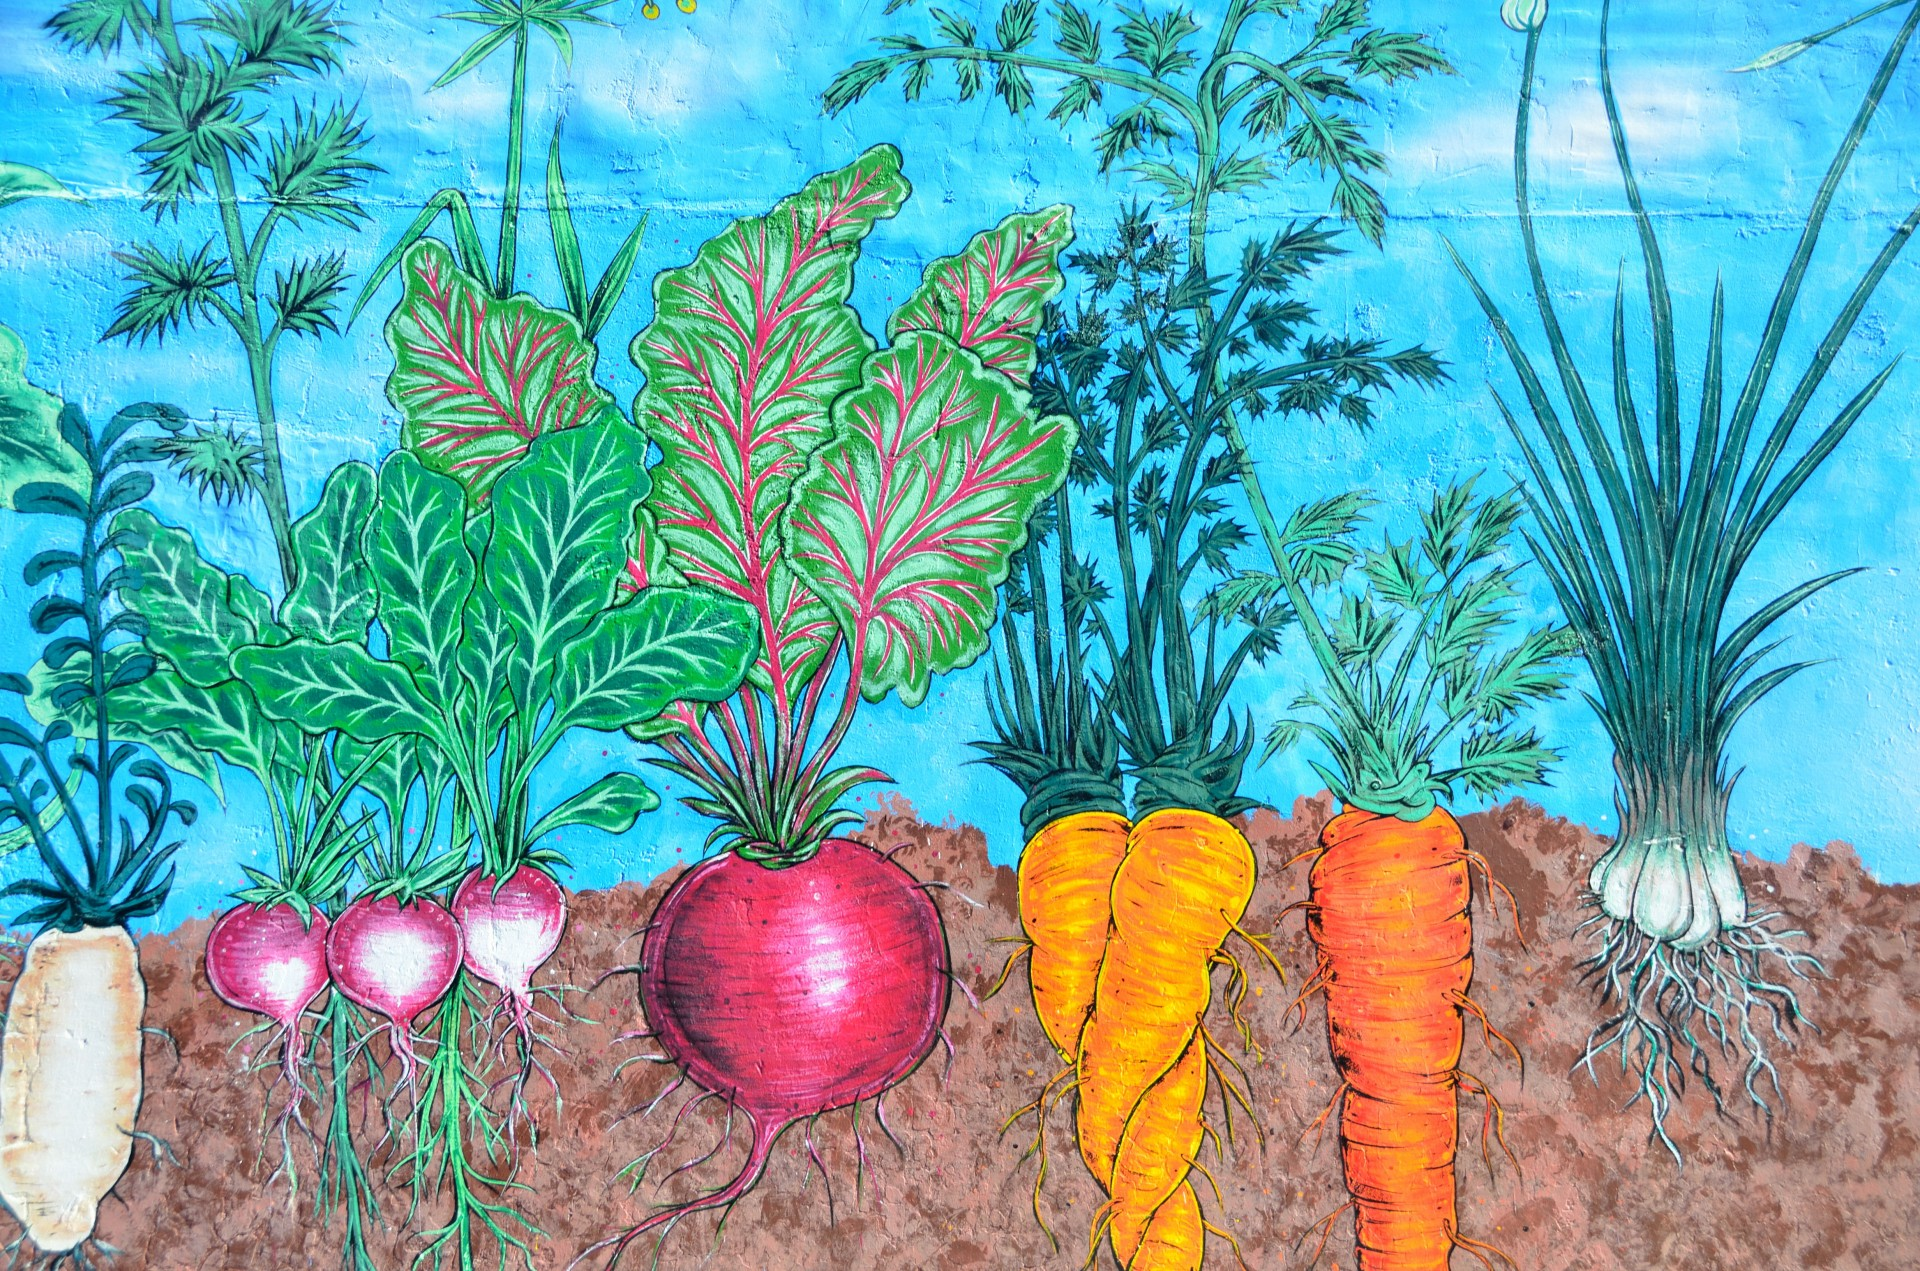 Vegetable garden art - Grow Your Own Vegetables Growing Gardening Carrots Courgettes Lettuce